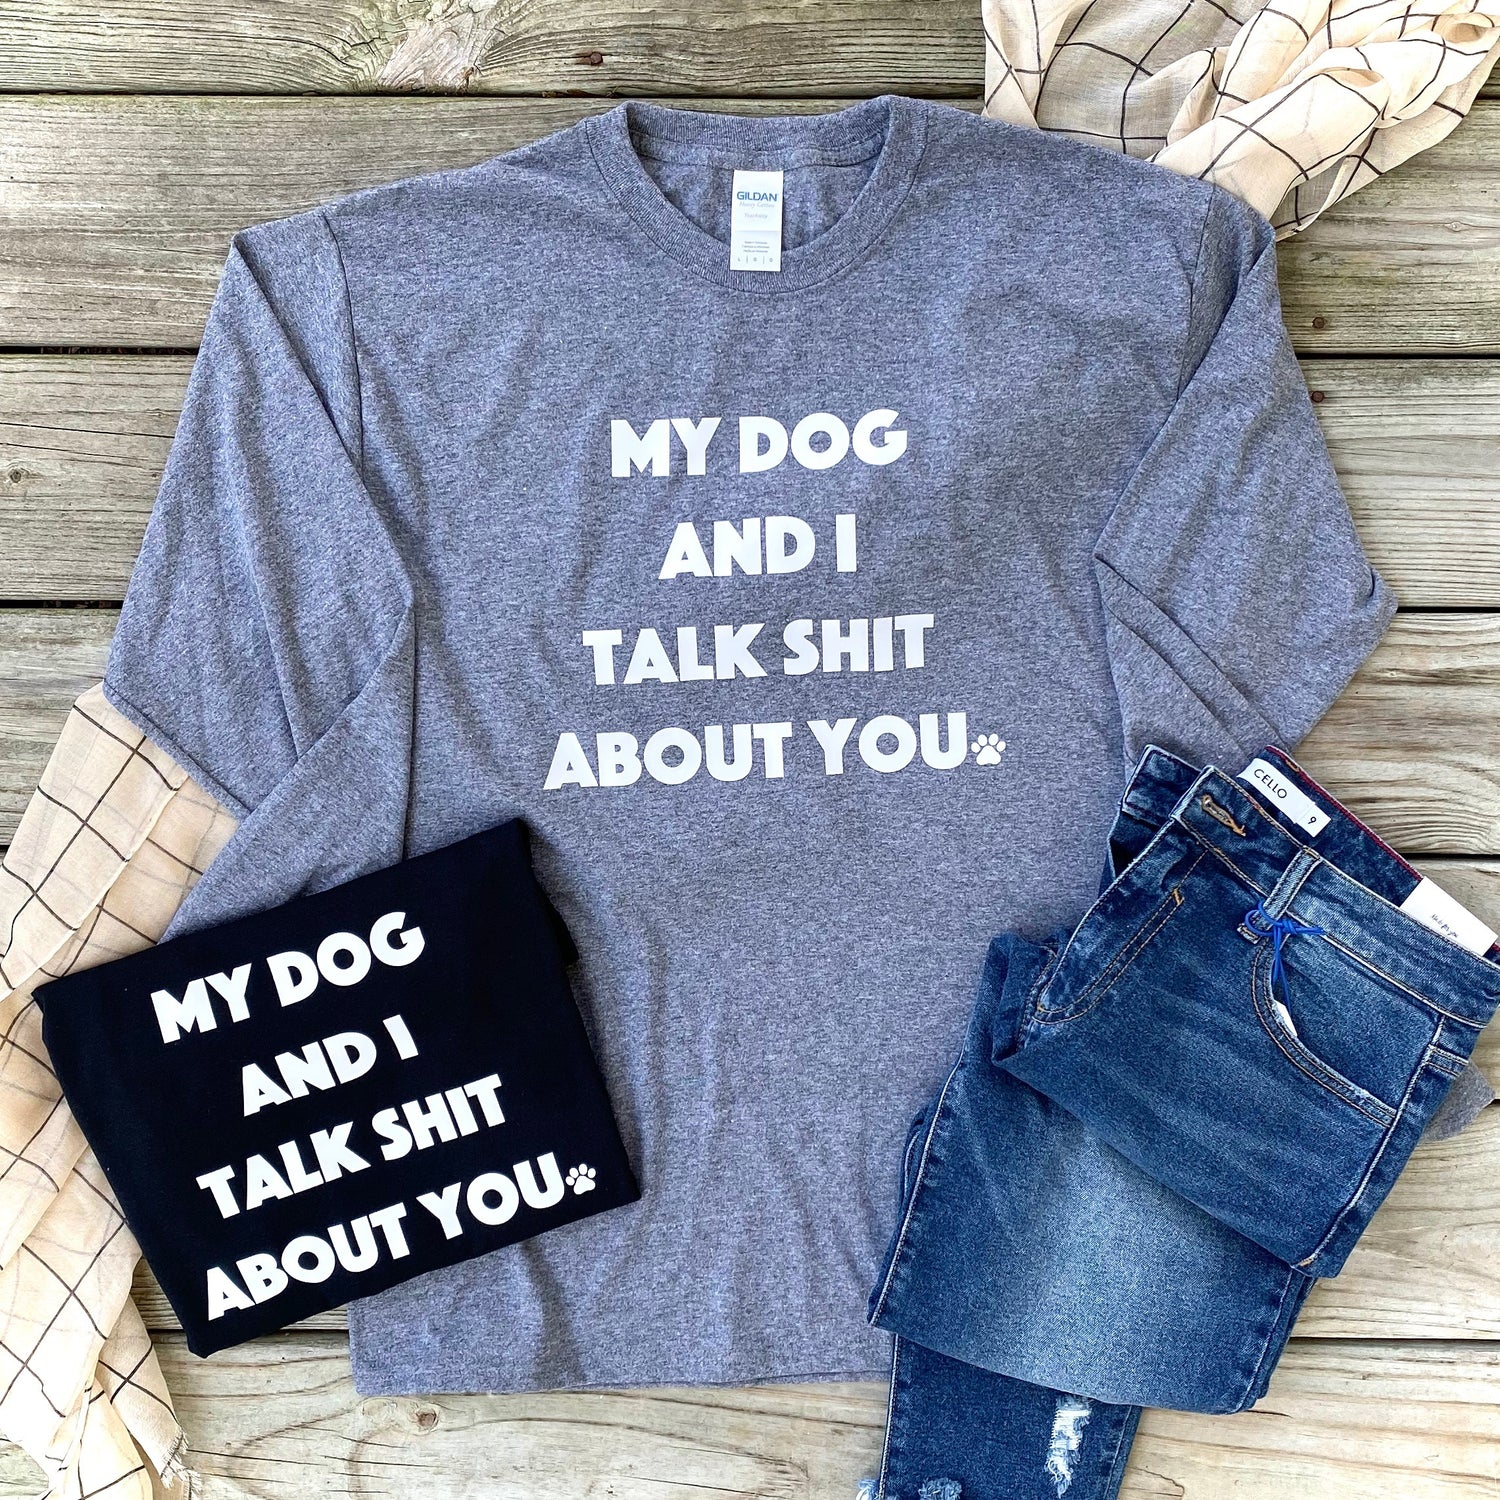 My Dog and I - Graphic T-Shirt